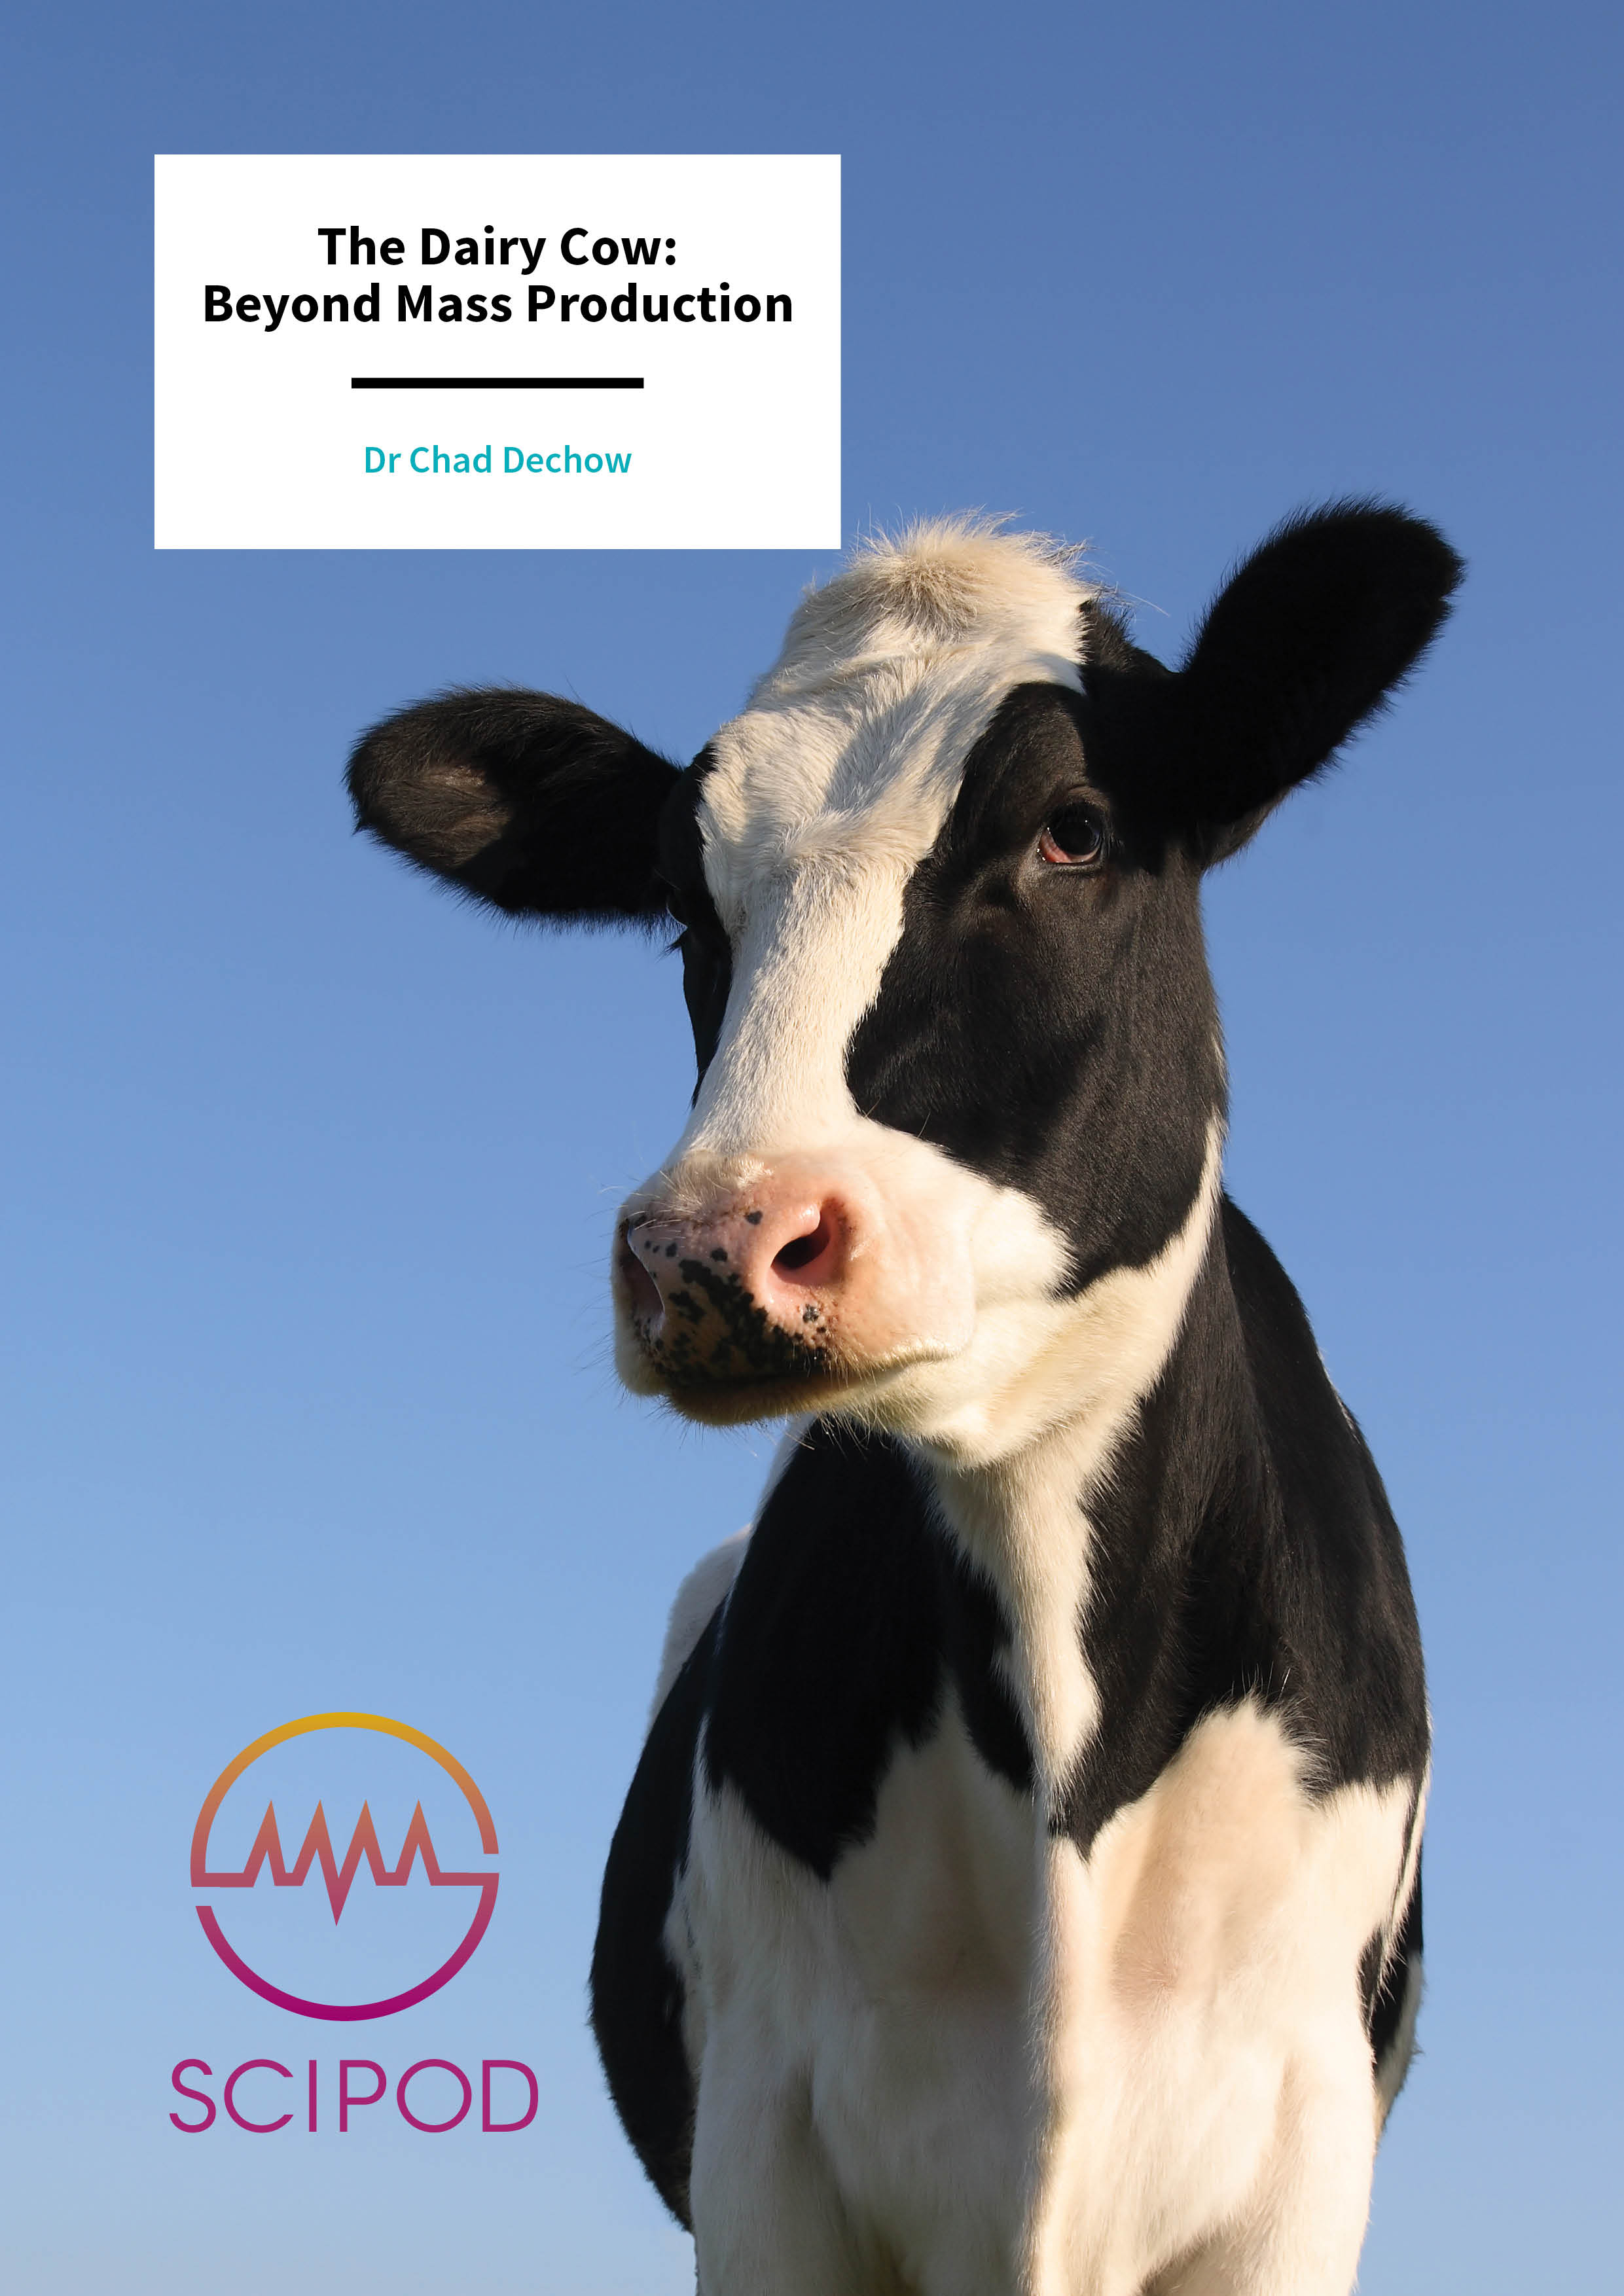 The Dairy Cow Beyond Mass Production – Dr Chad Dechow, Pennsylvania State University